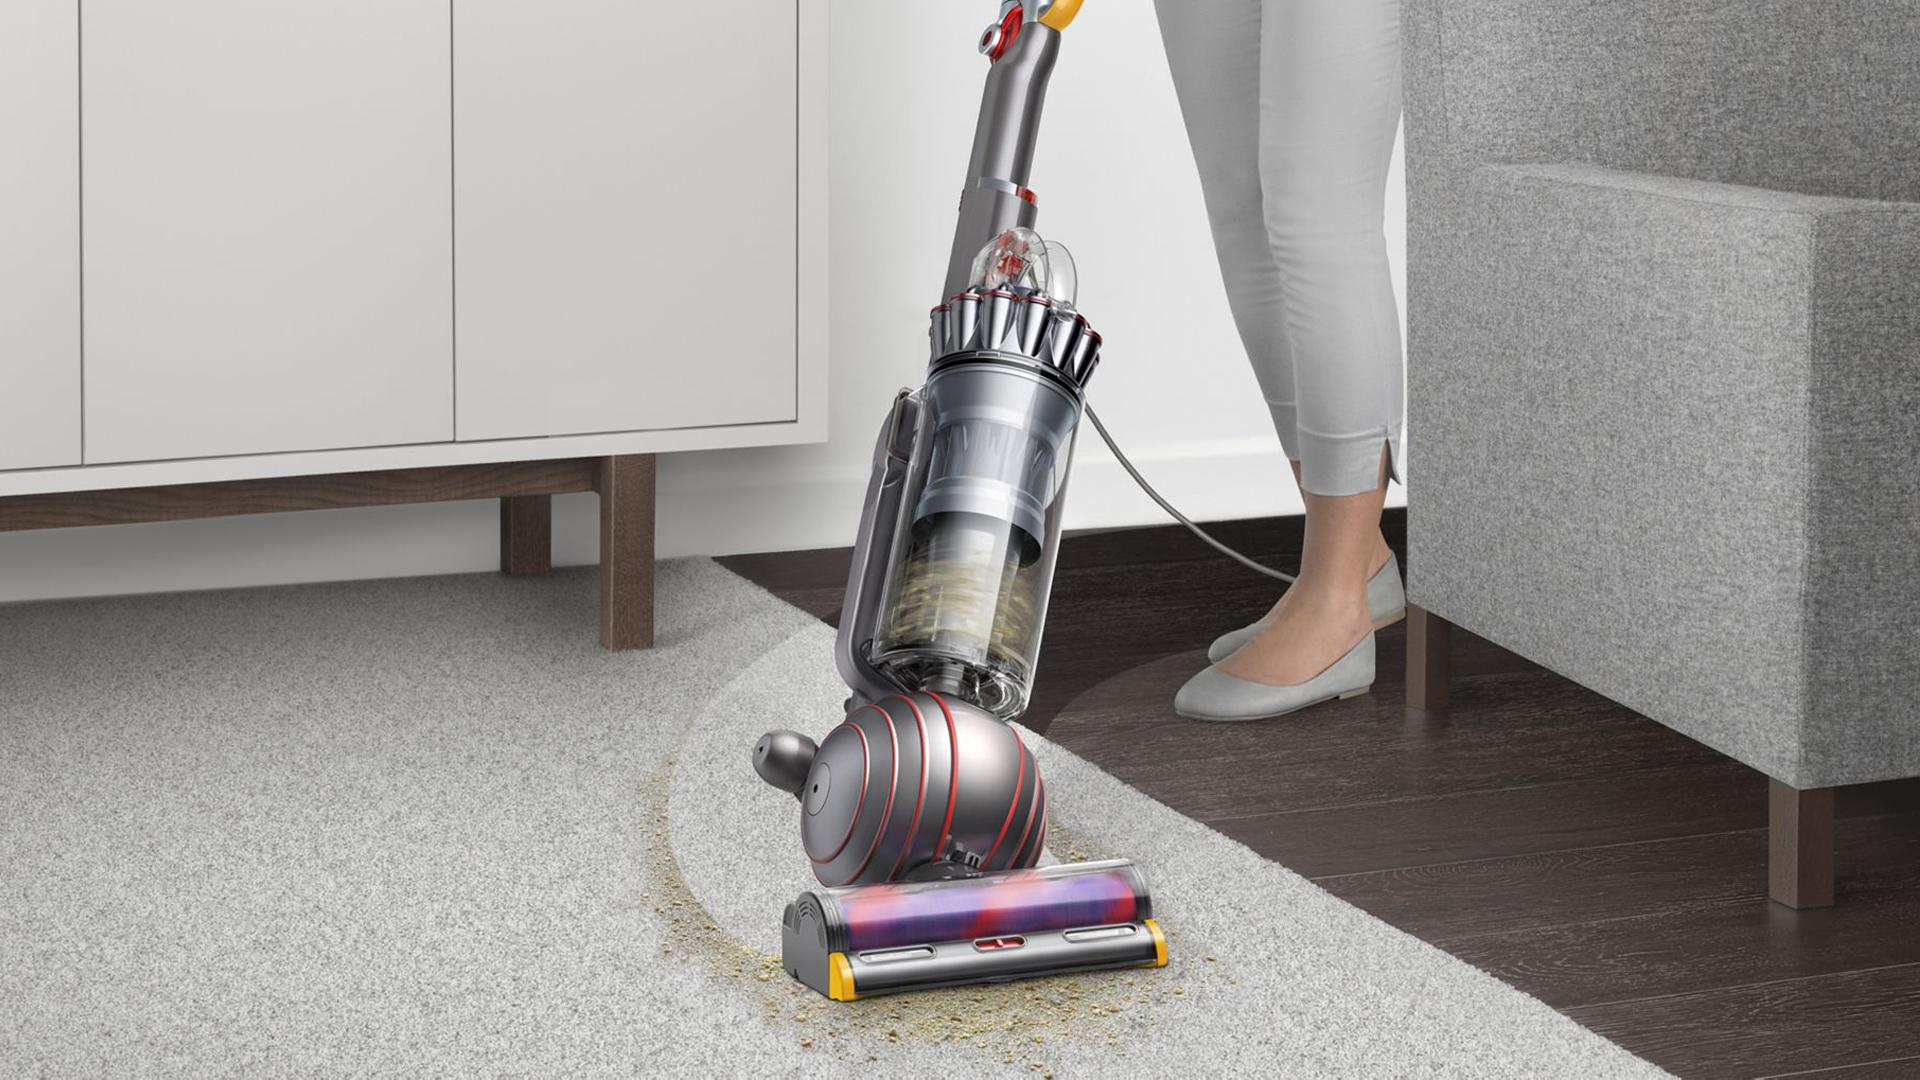 Dyson corded vacuums